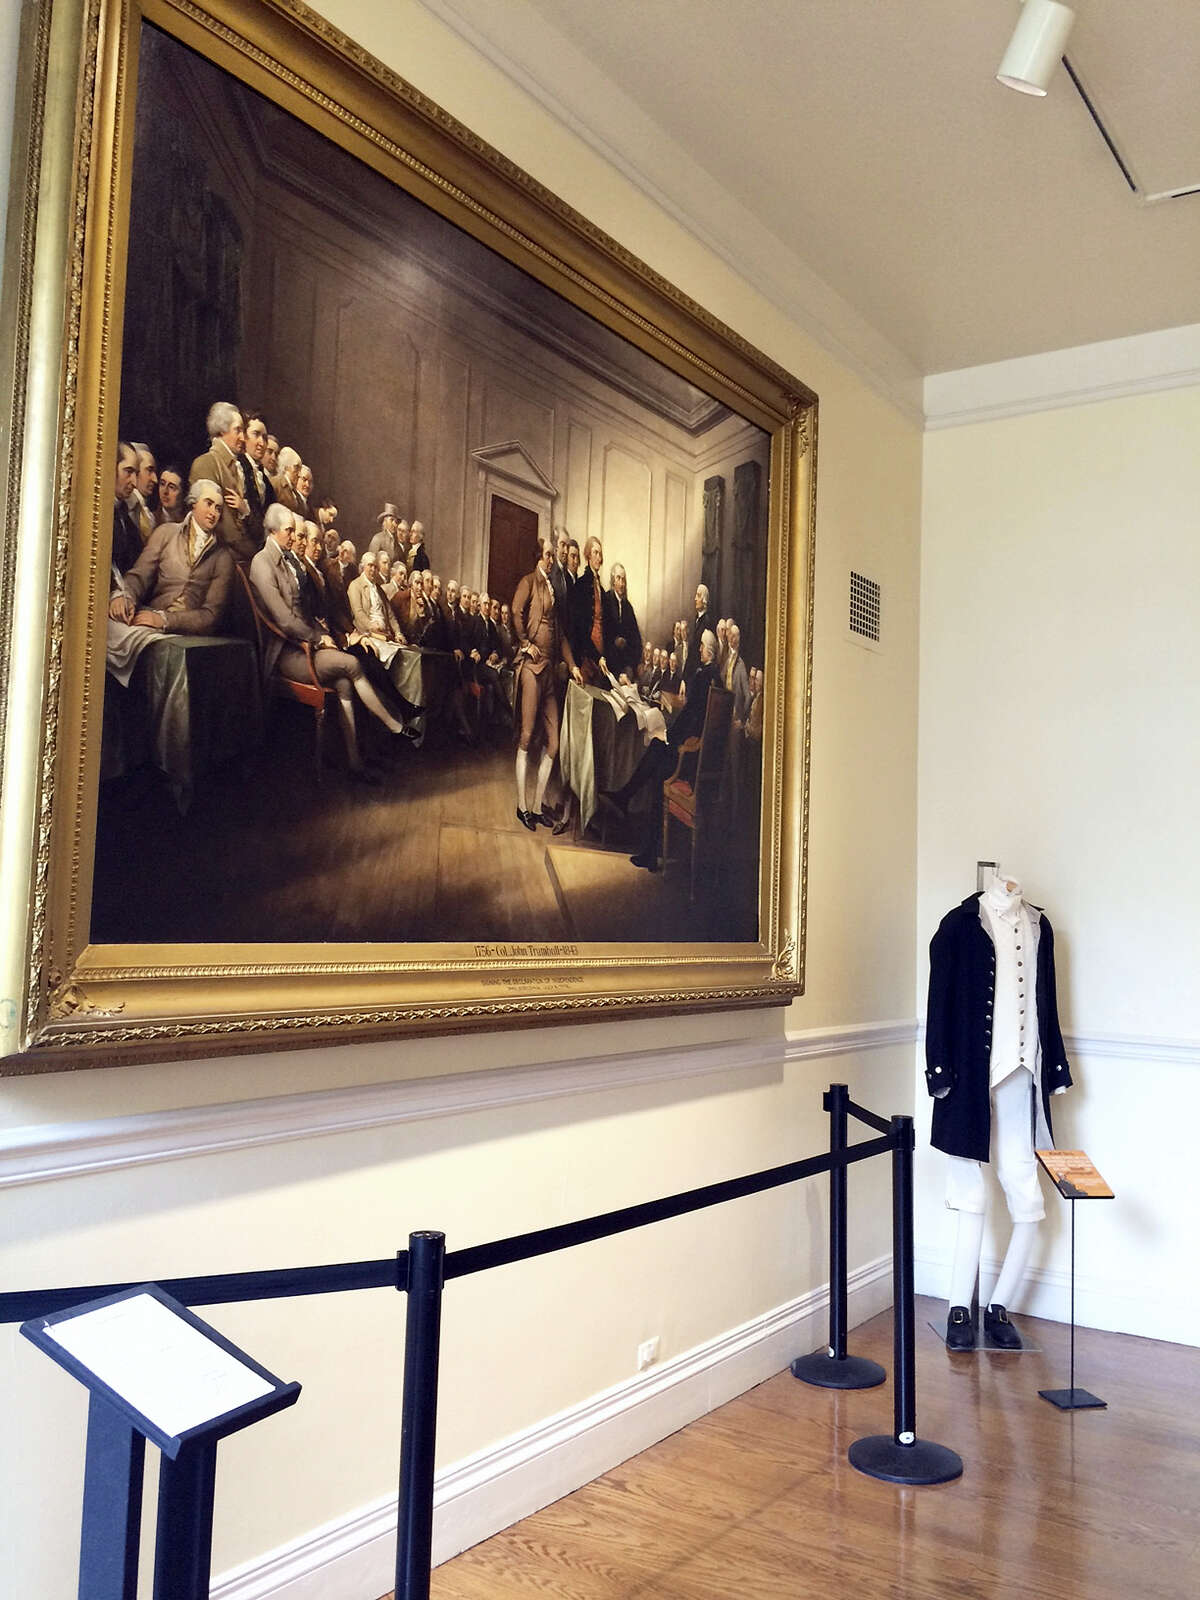 """An 1832 oil painting by John Trumbull, """"The Declaration of Independence, July 4, 1776,"""" hangs inside the former executive branch offices of the Old State House in Hartford. A larger version of the painting hangs in the U.S. Capitol Rotunda. The fate of the 220-year-old historic landmark is uncertain after state lawmakers transferred responsibility for the property to the state's environmental agency, which is struggling to cover millions of dollars in budget cuts."""